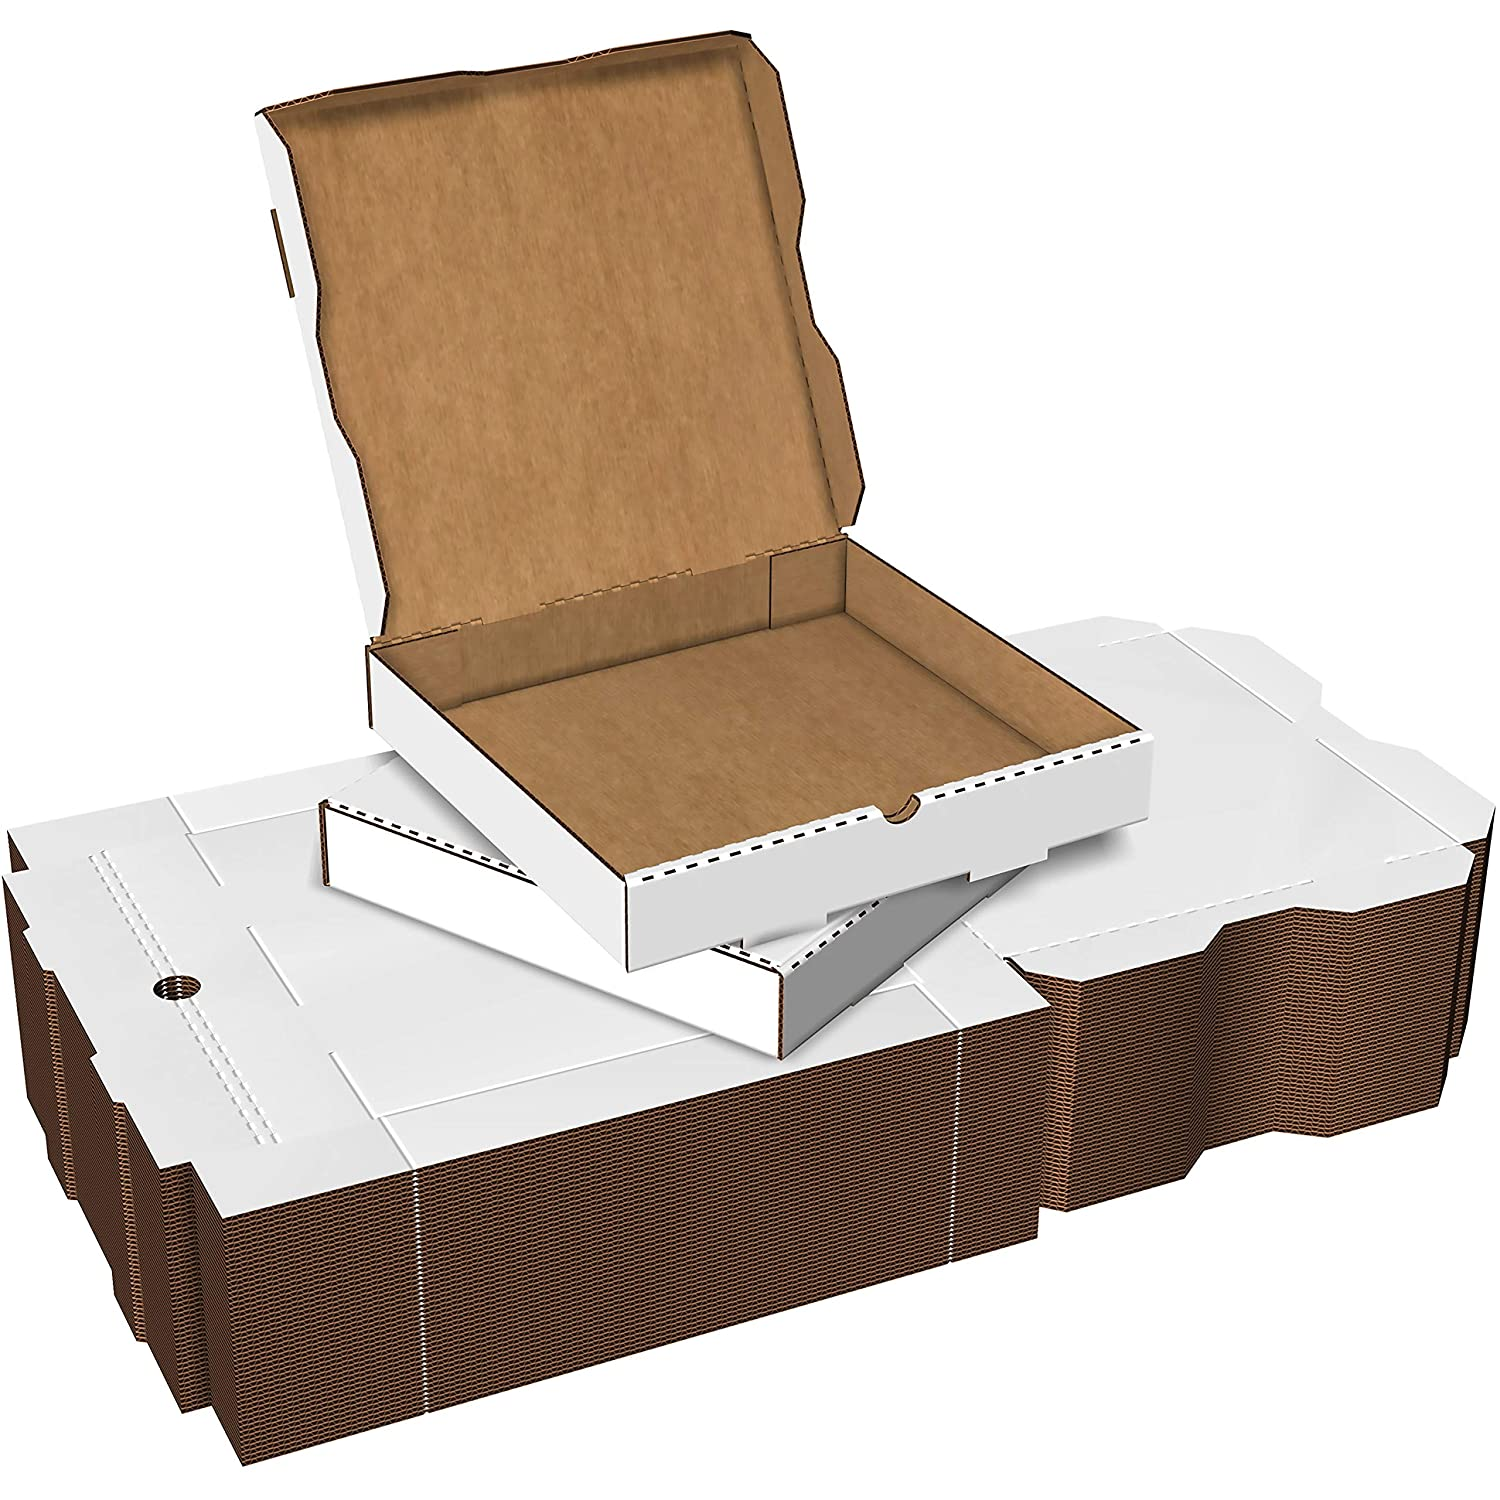 White Cardboard New popularity Pizza safety Boxes Takeout - Containers x 12